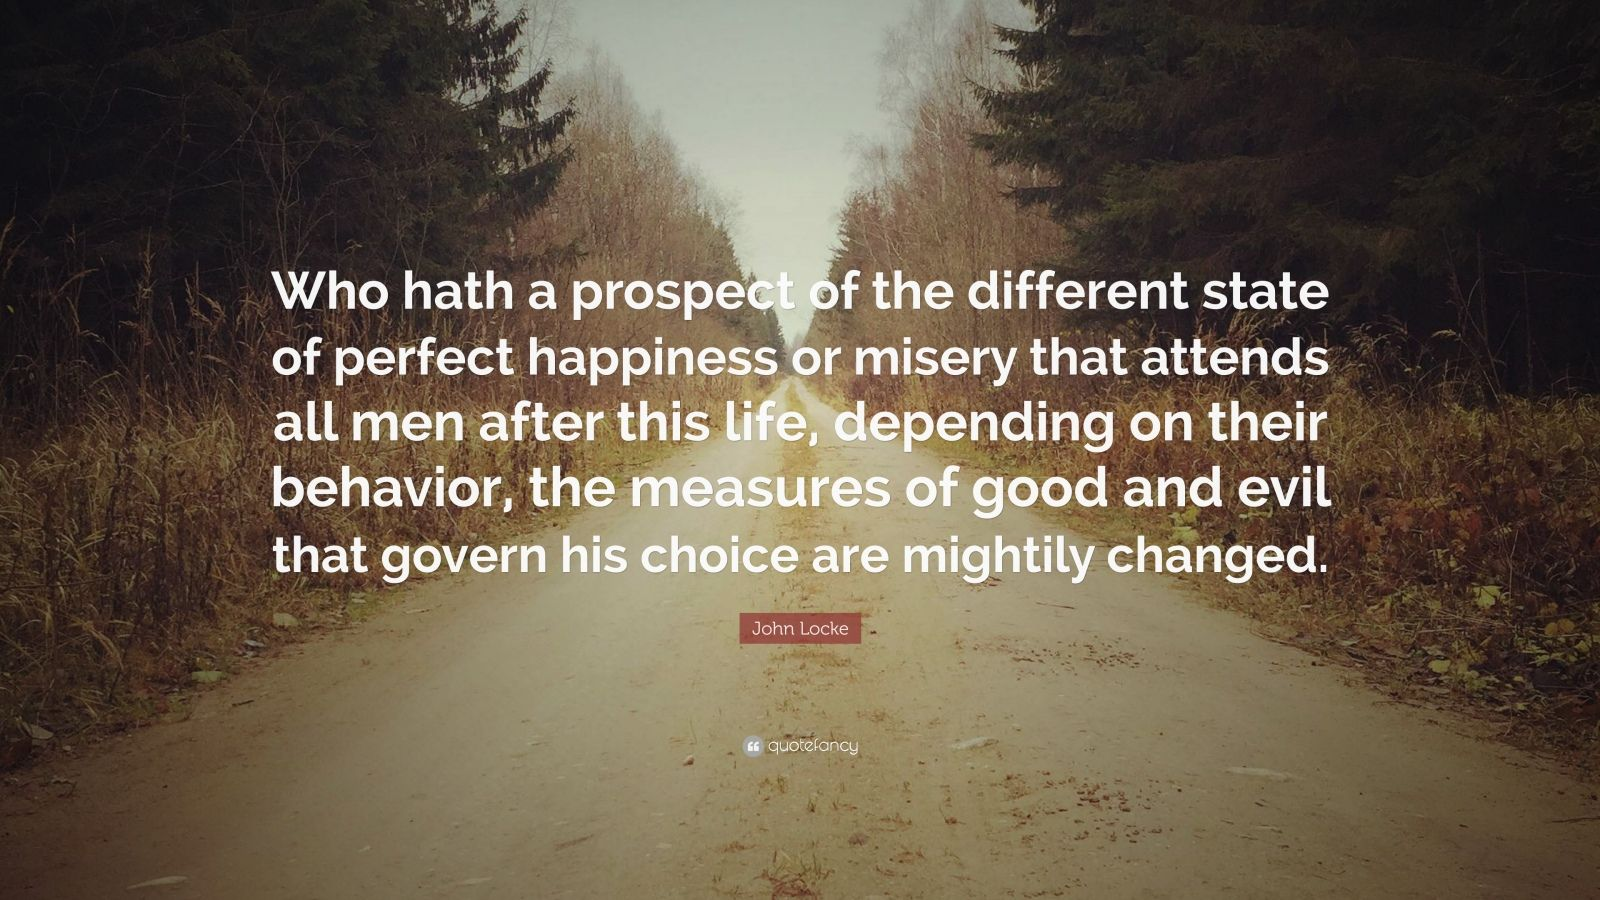 """John Locke Quote: """"Who hath a prospect of the different state of perfect happiness or misery that attends all men after this life, depending on their behavior, the measures of good and evil that govern his choice are mightily changed."""""""